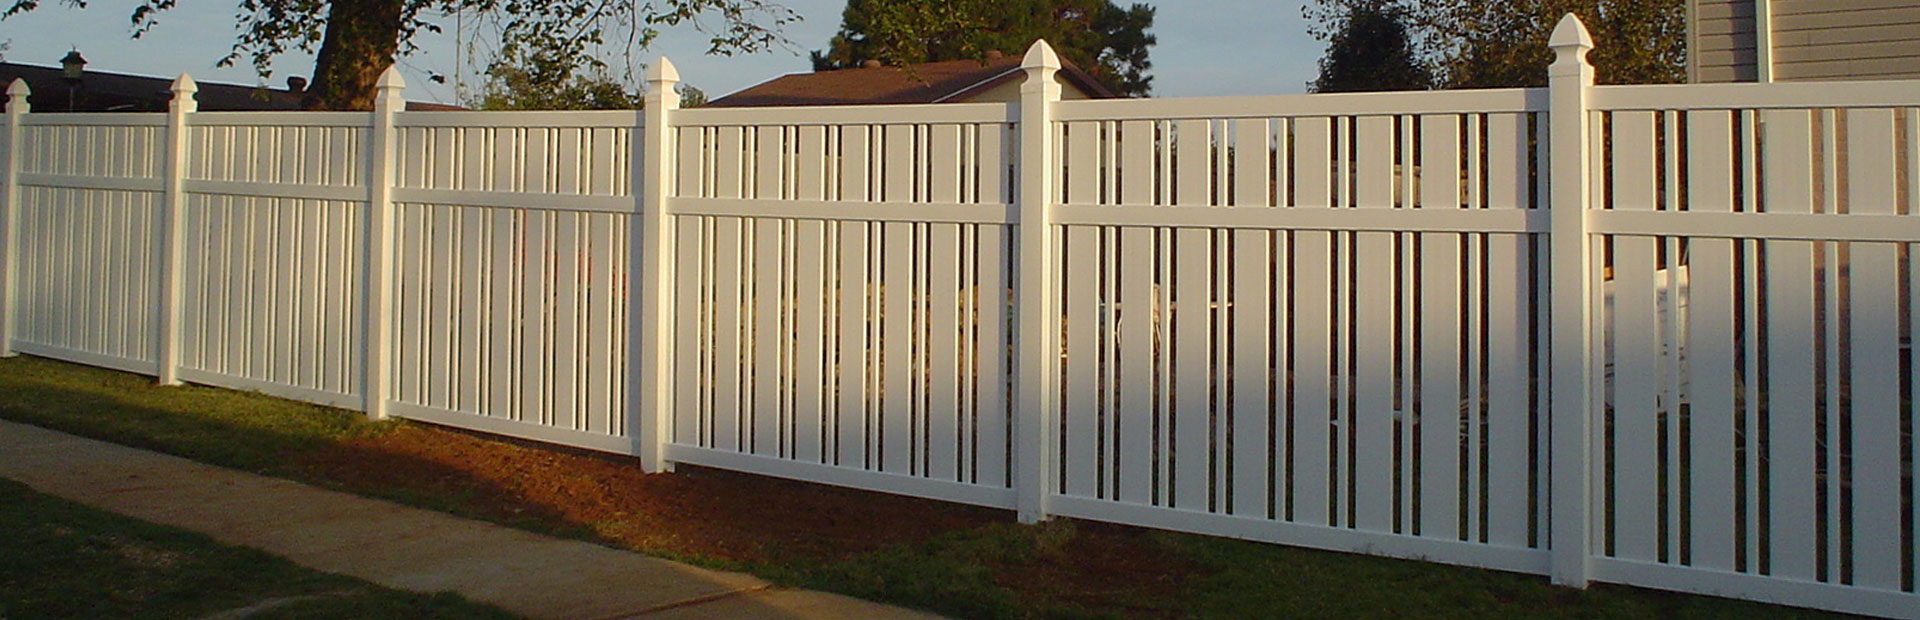 Vinyl Fence Construction - Denton, Texas